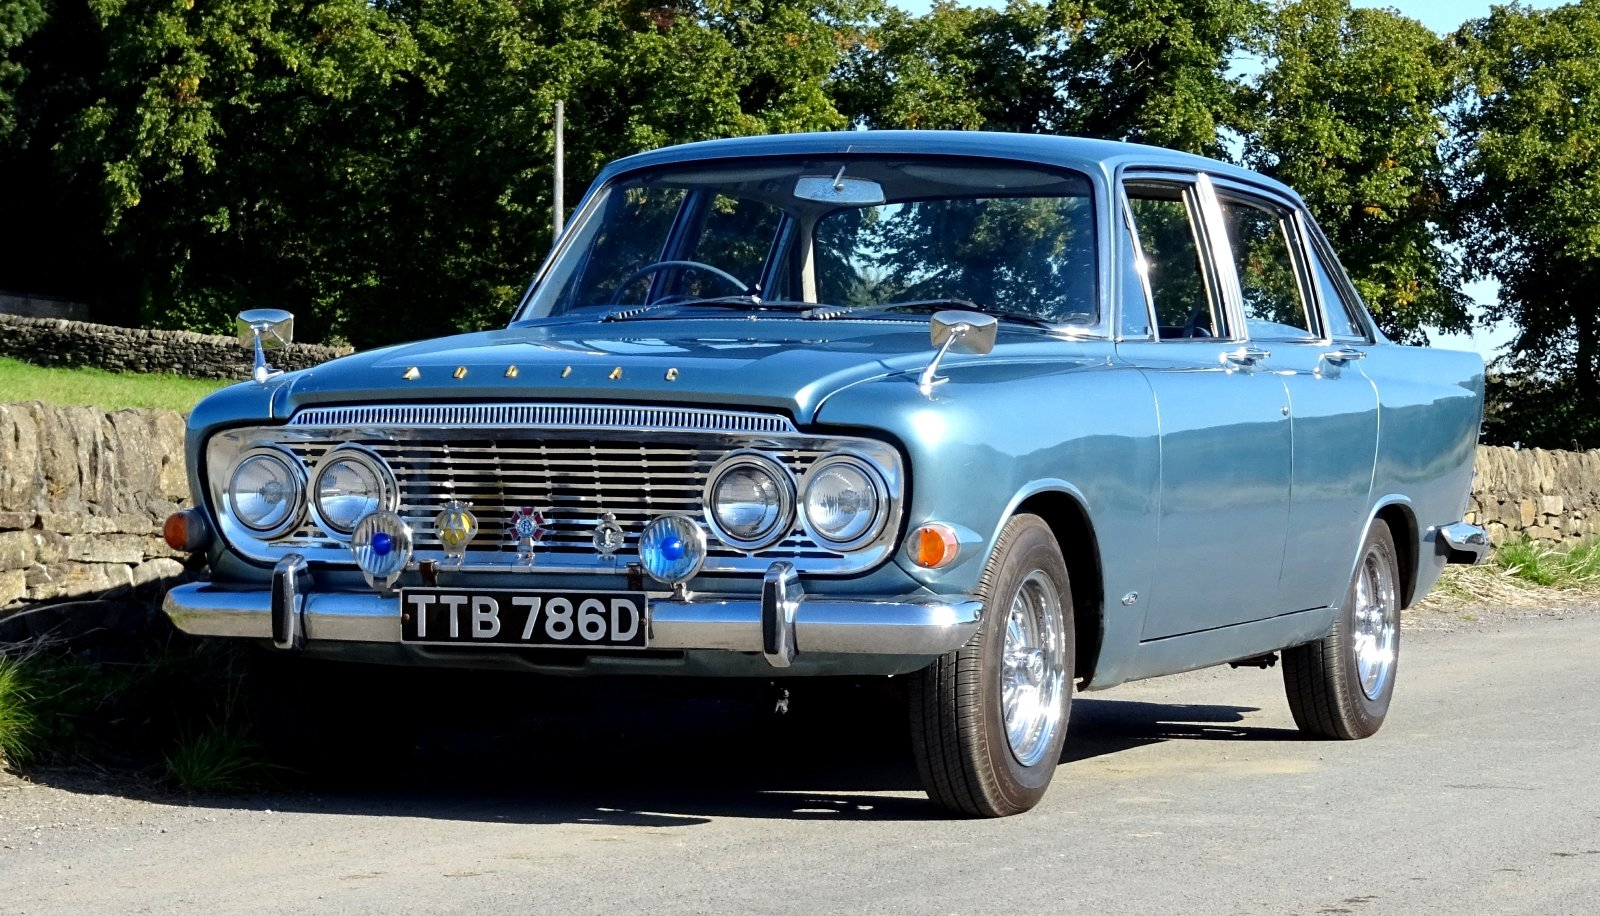 1966 FORD ZODIAC MK3 STUNNING DEEP BLUE PAINT & SPARKLING CHROME For Sale (picture 2 of 6)